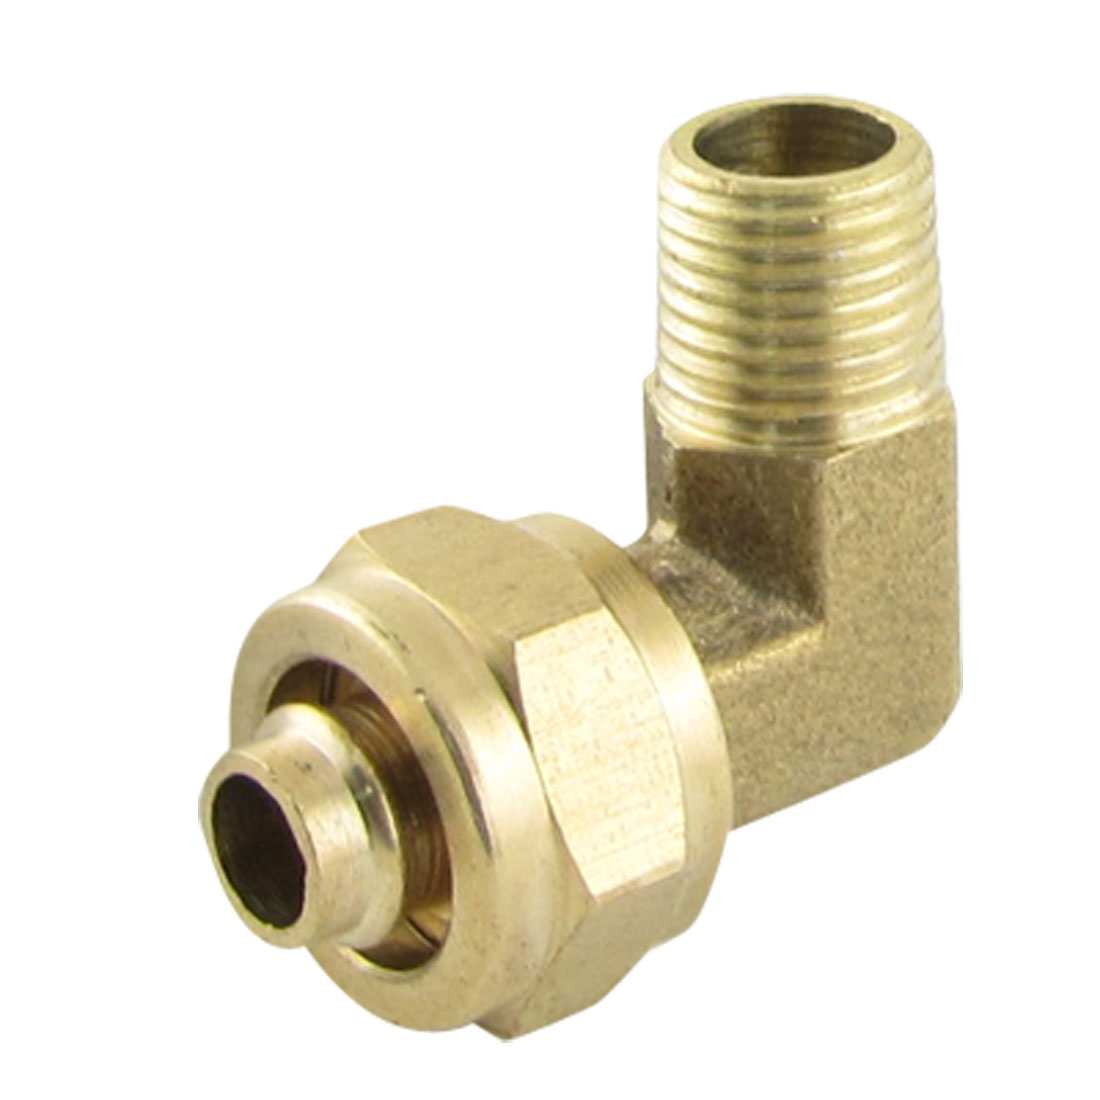 Brass Piping 6.5 x 10mm Tube Joint Elbow Connector Quick Coupler